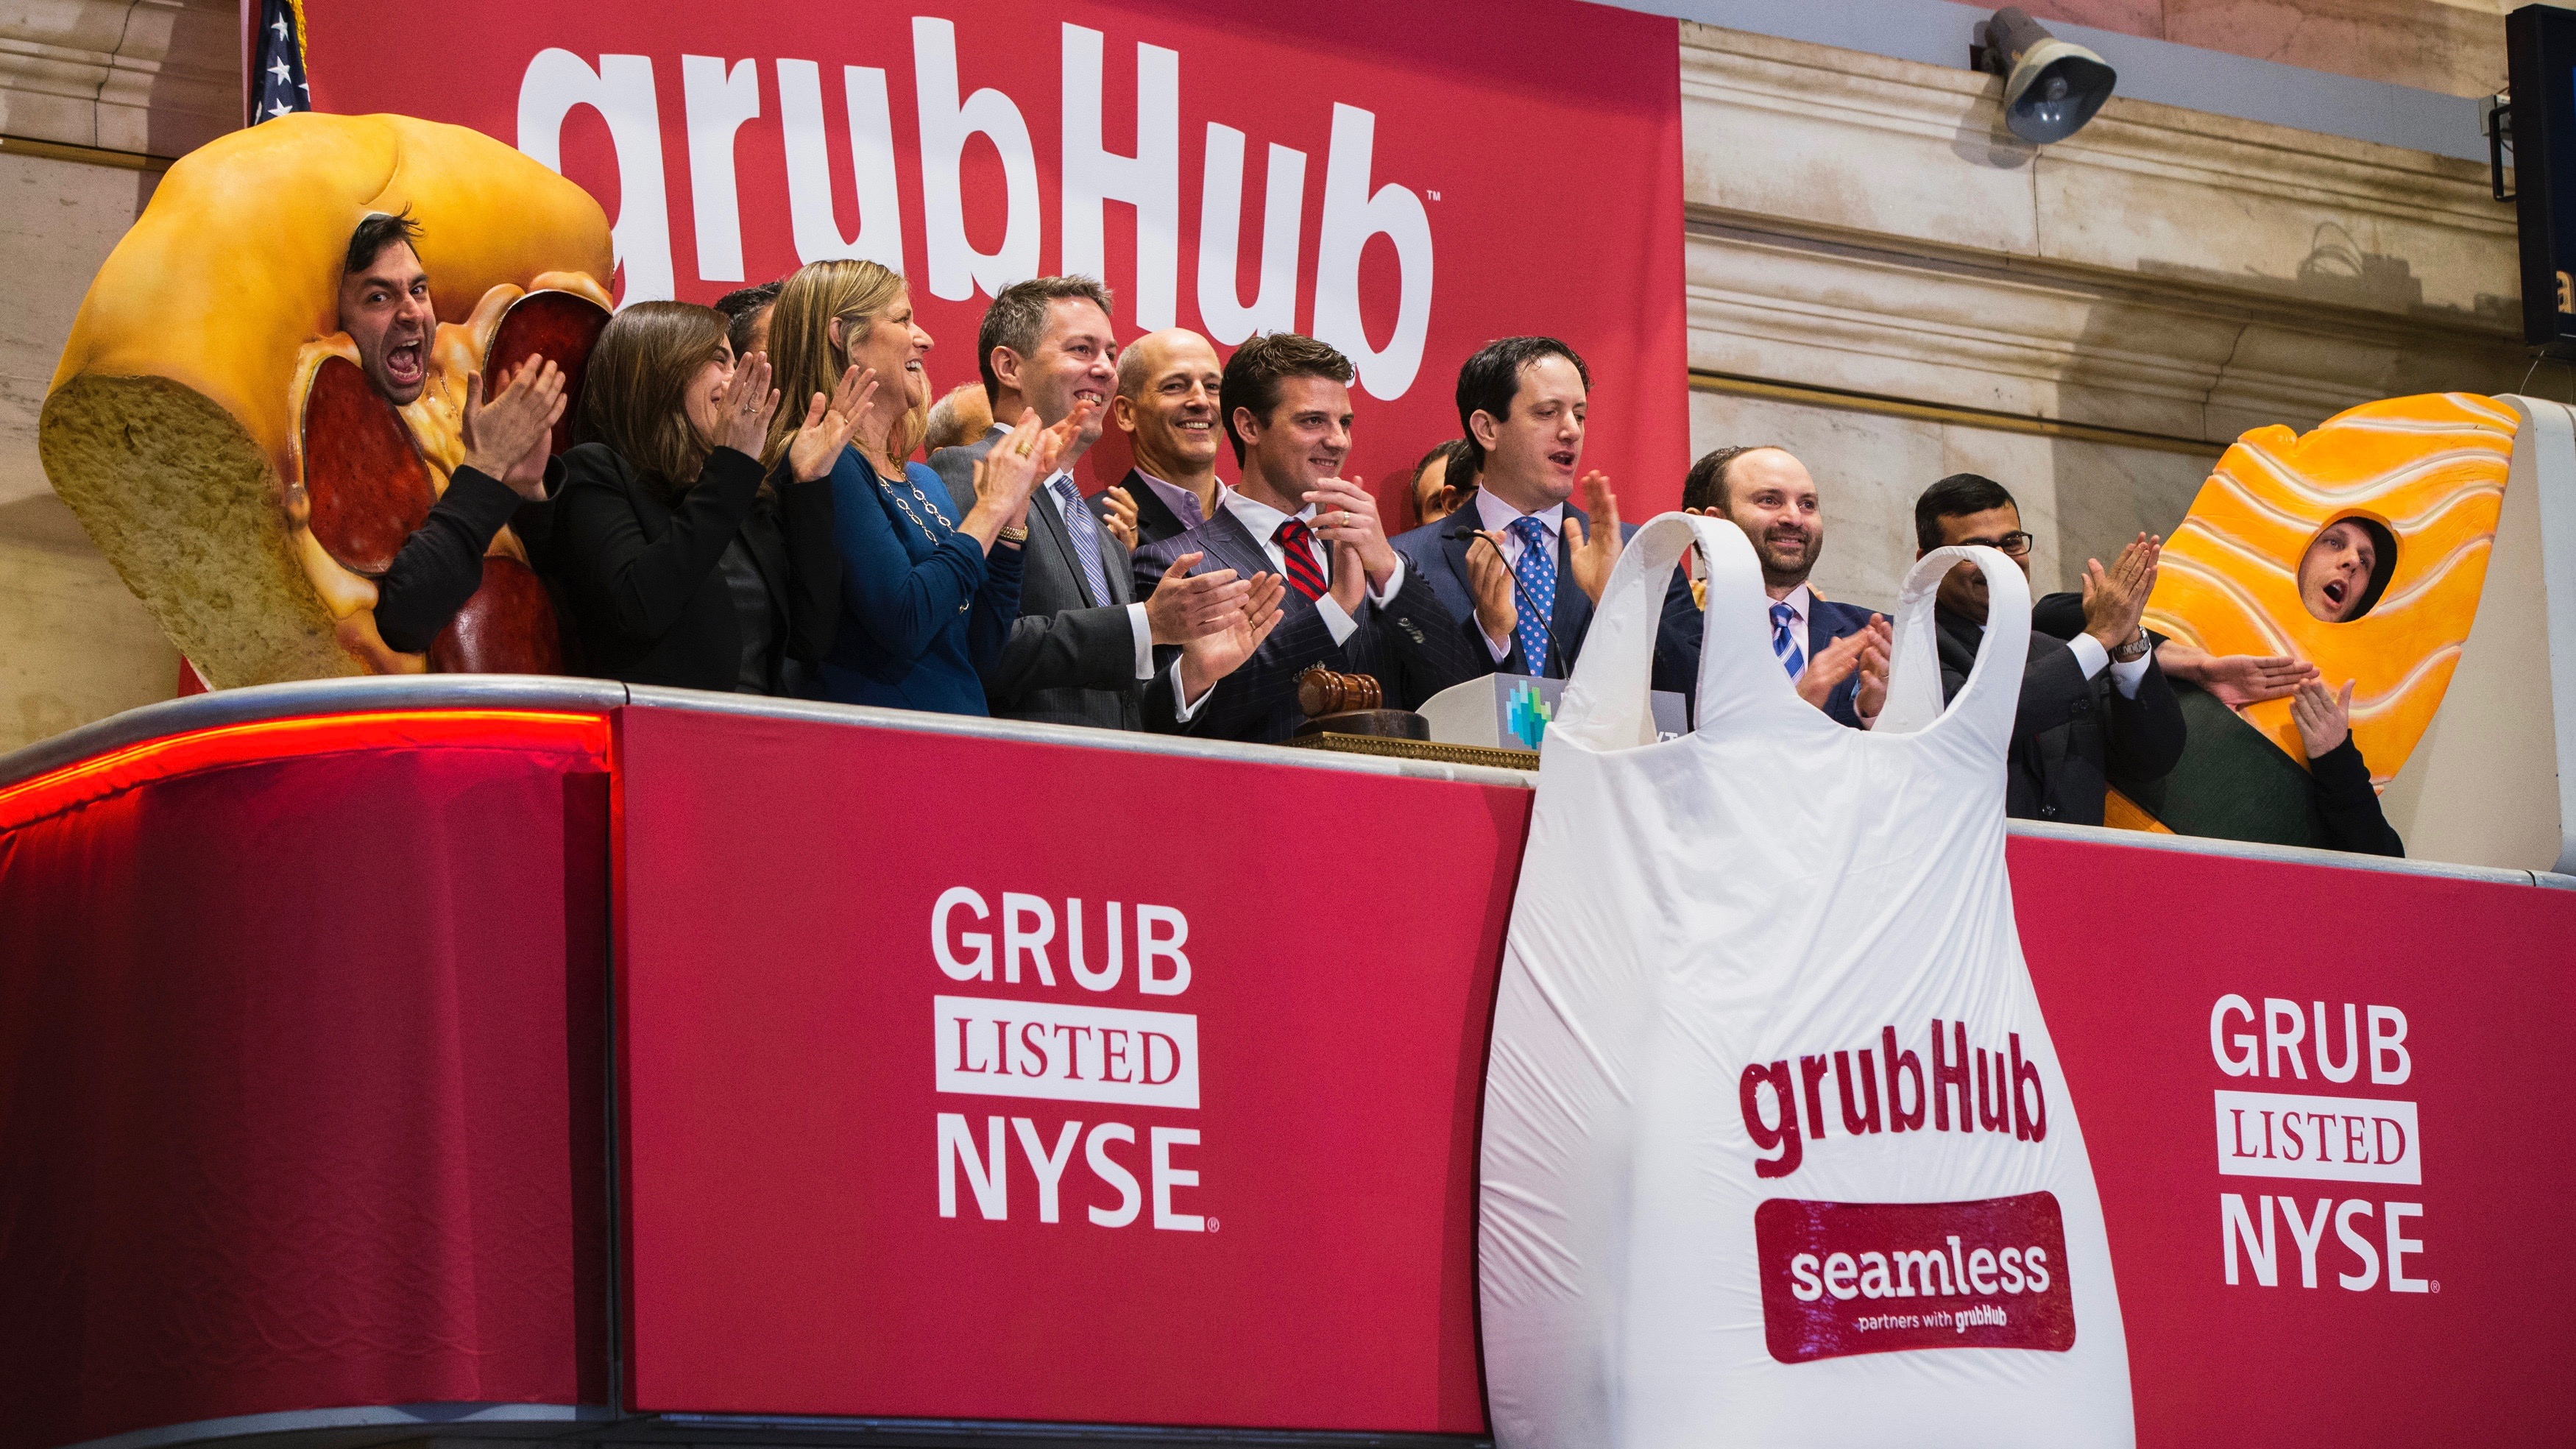 GrubHub gives the impression of being a food delivery service. But it says that's not really its business.